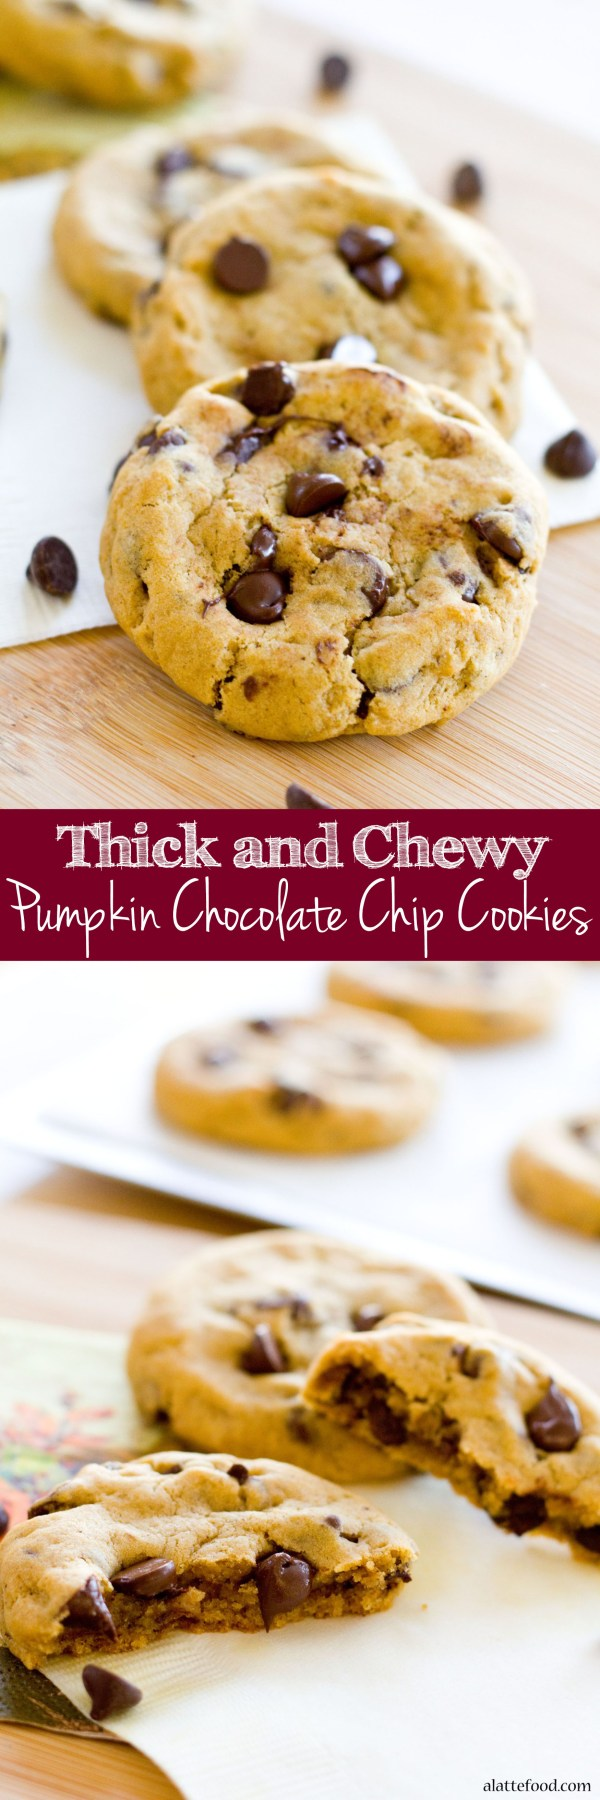 This pumpkin dessert recipe transforms the classic chocolate chip cookie into the perfect fall dessert!